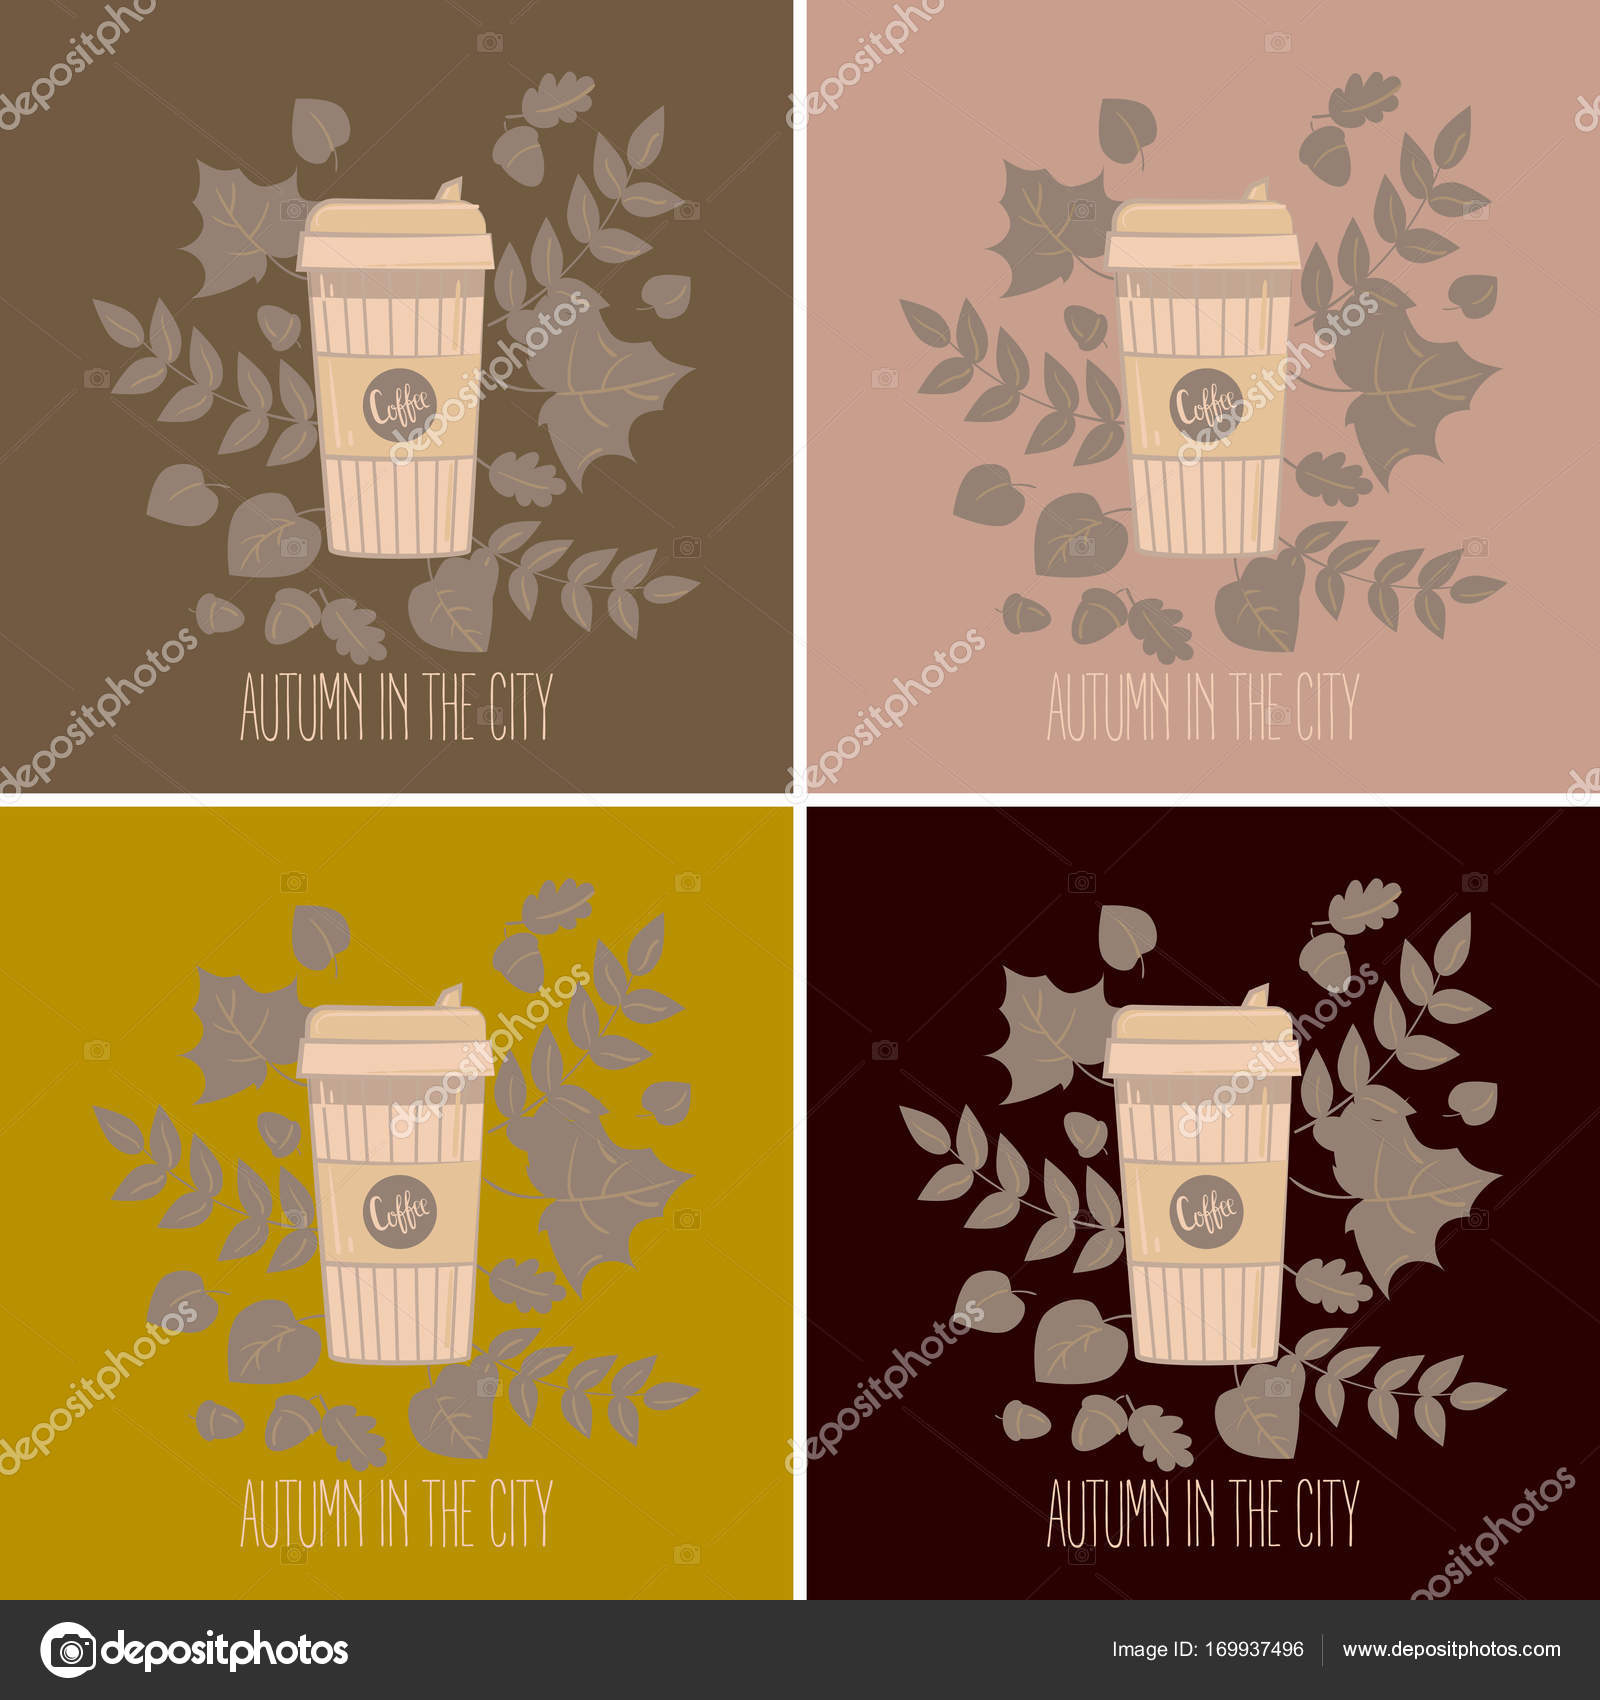 cb9ebb2bd31 Set of paper recyclable coffee cups in colours. Mug vector illustration. Coffee  cup in autumn leaves. Autumn in the city text.